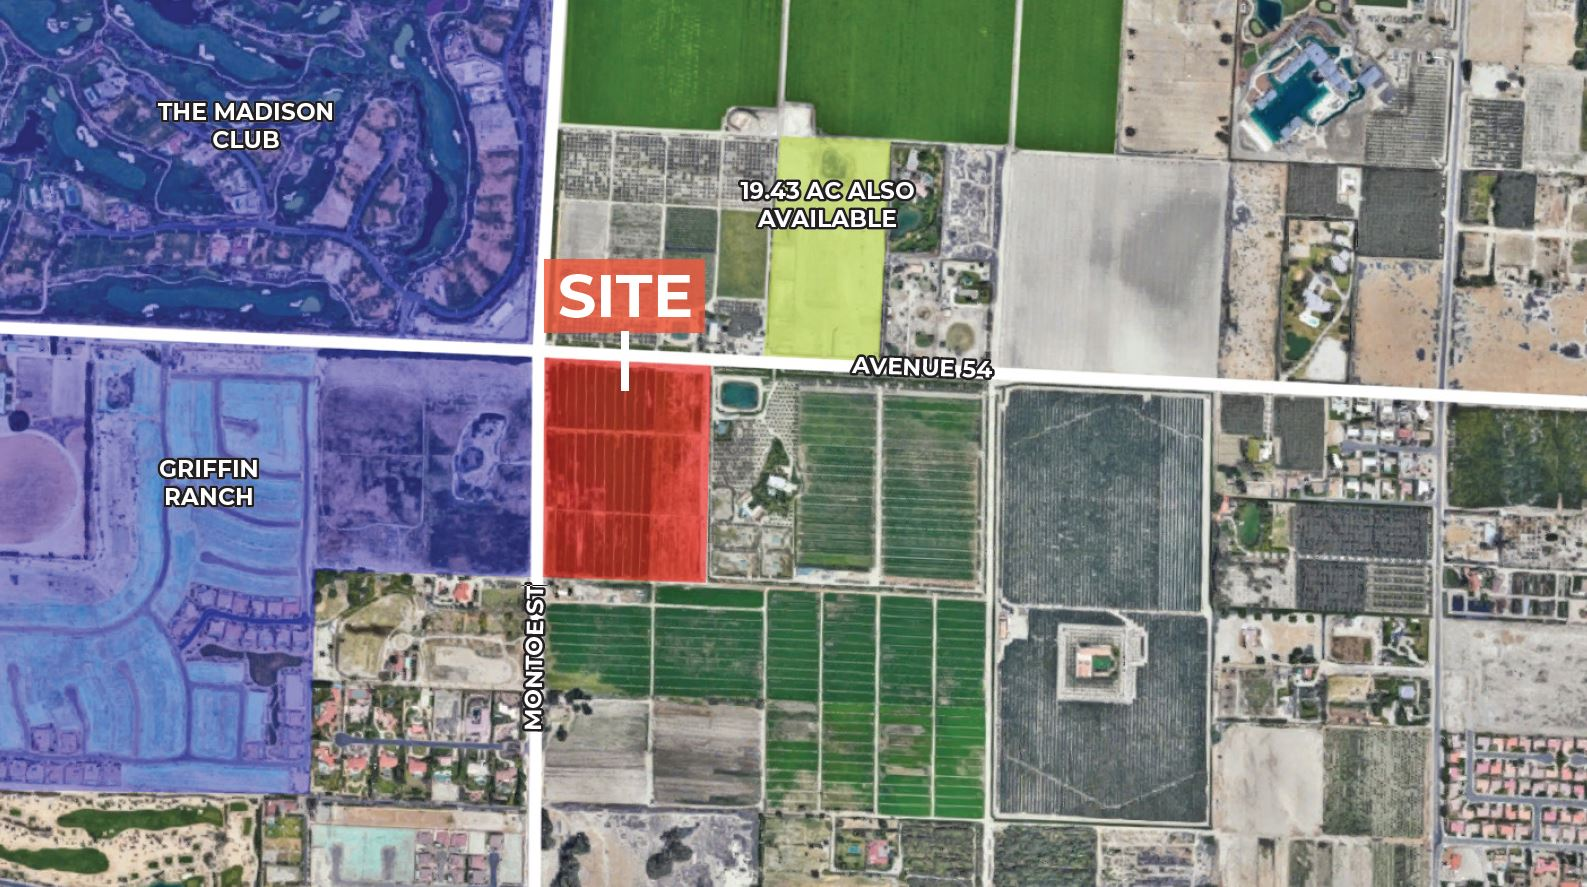 zoomed aerial image of 28.2 ac agricultural land for sale at avenue 54 vista santa rosa california